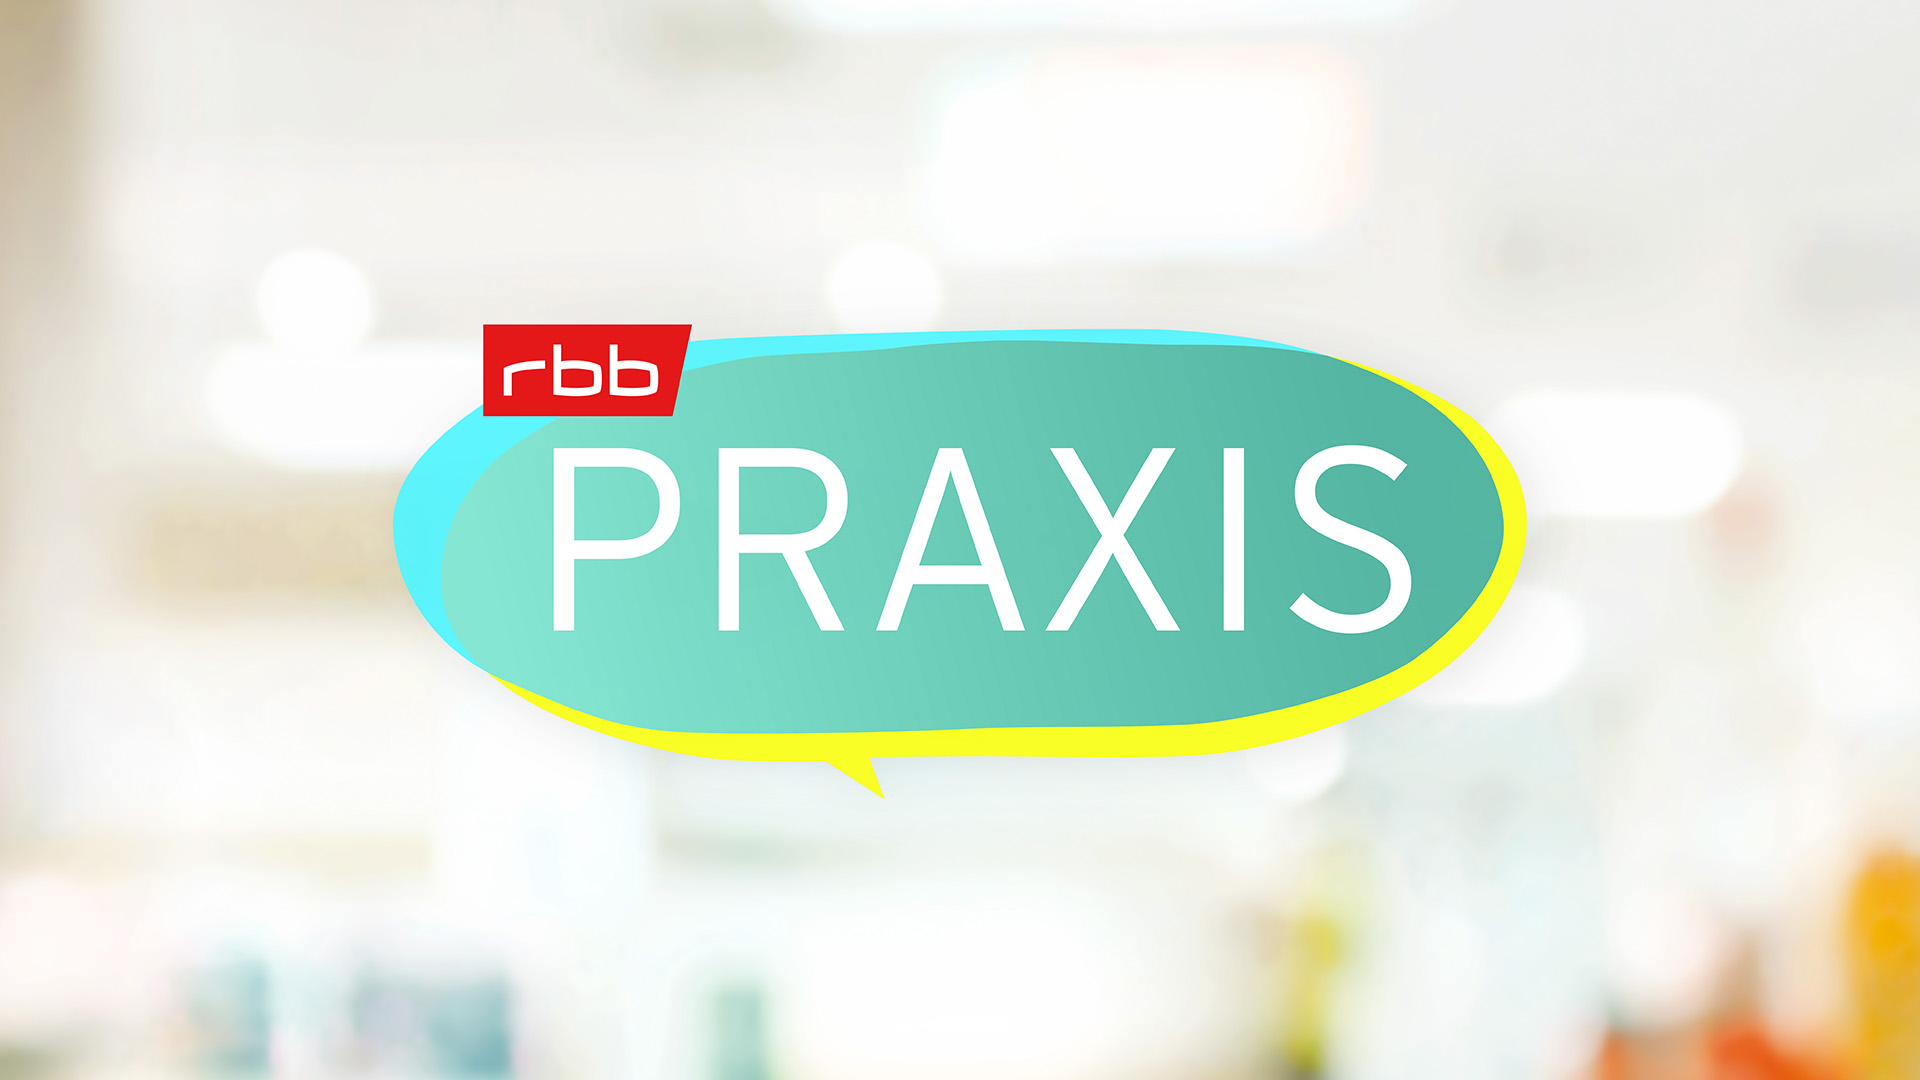 rbb praxis rbb rundfunk berlin brandenburg. Black Bedroom Furniture Sets. Home Design Ideas